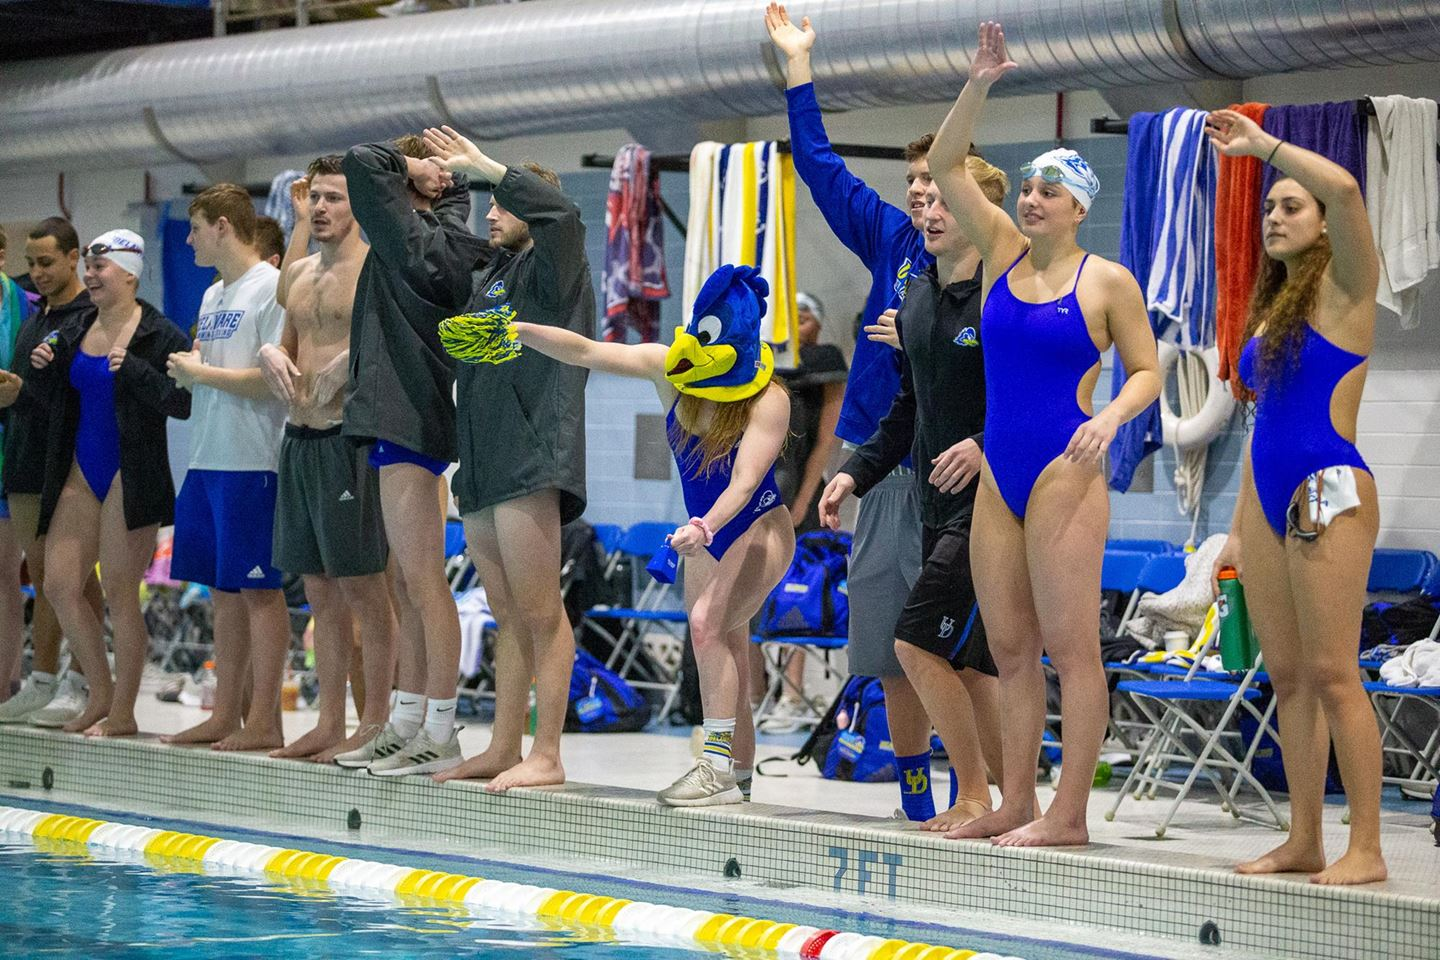 Delaware, Drexel Women Tie, Top Northeastern; Dragon Men Defeat Blue Hens